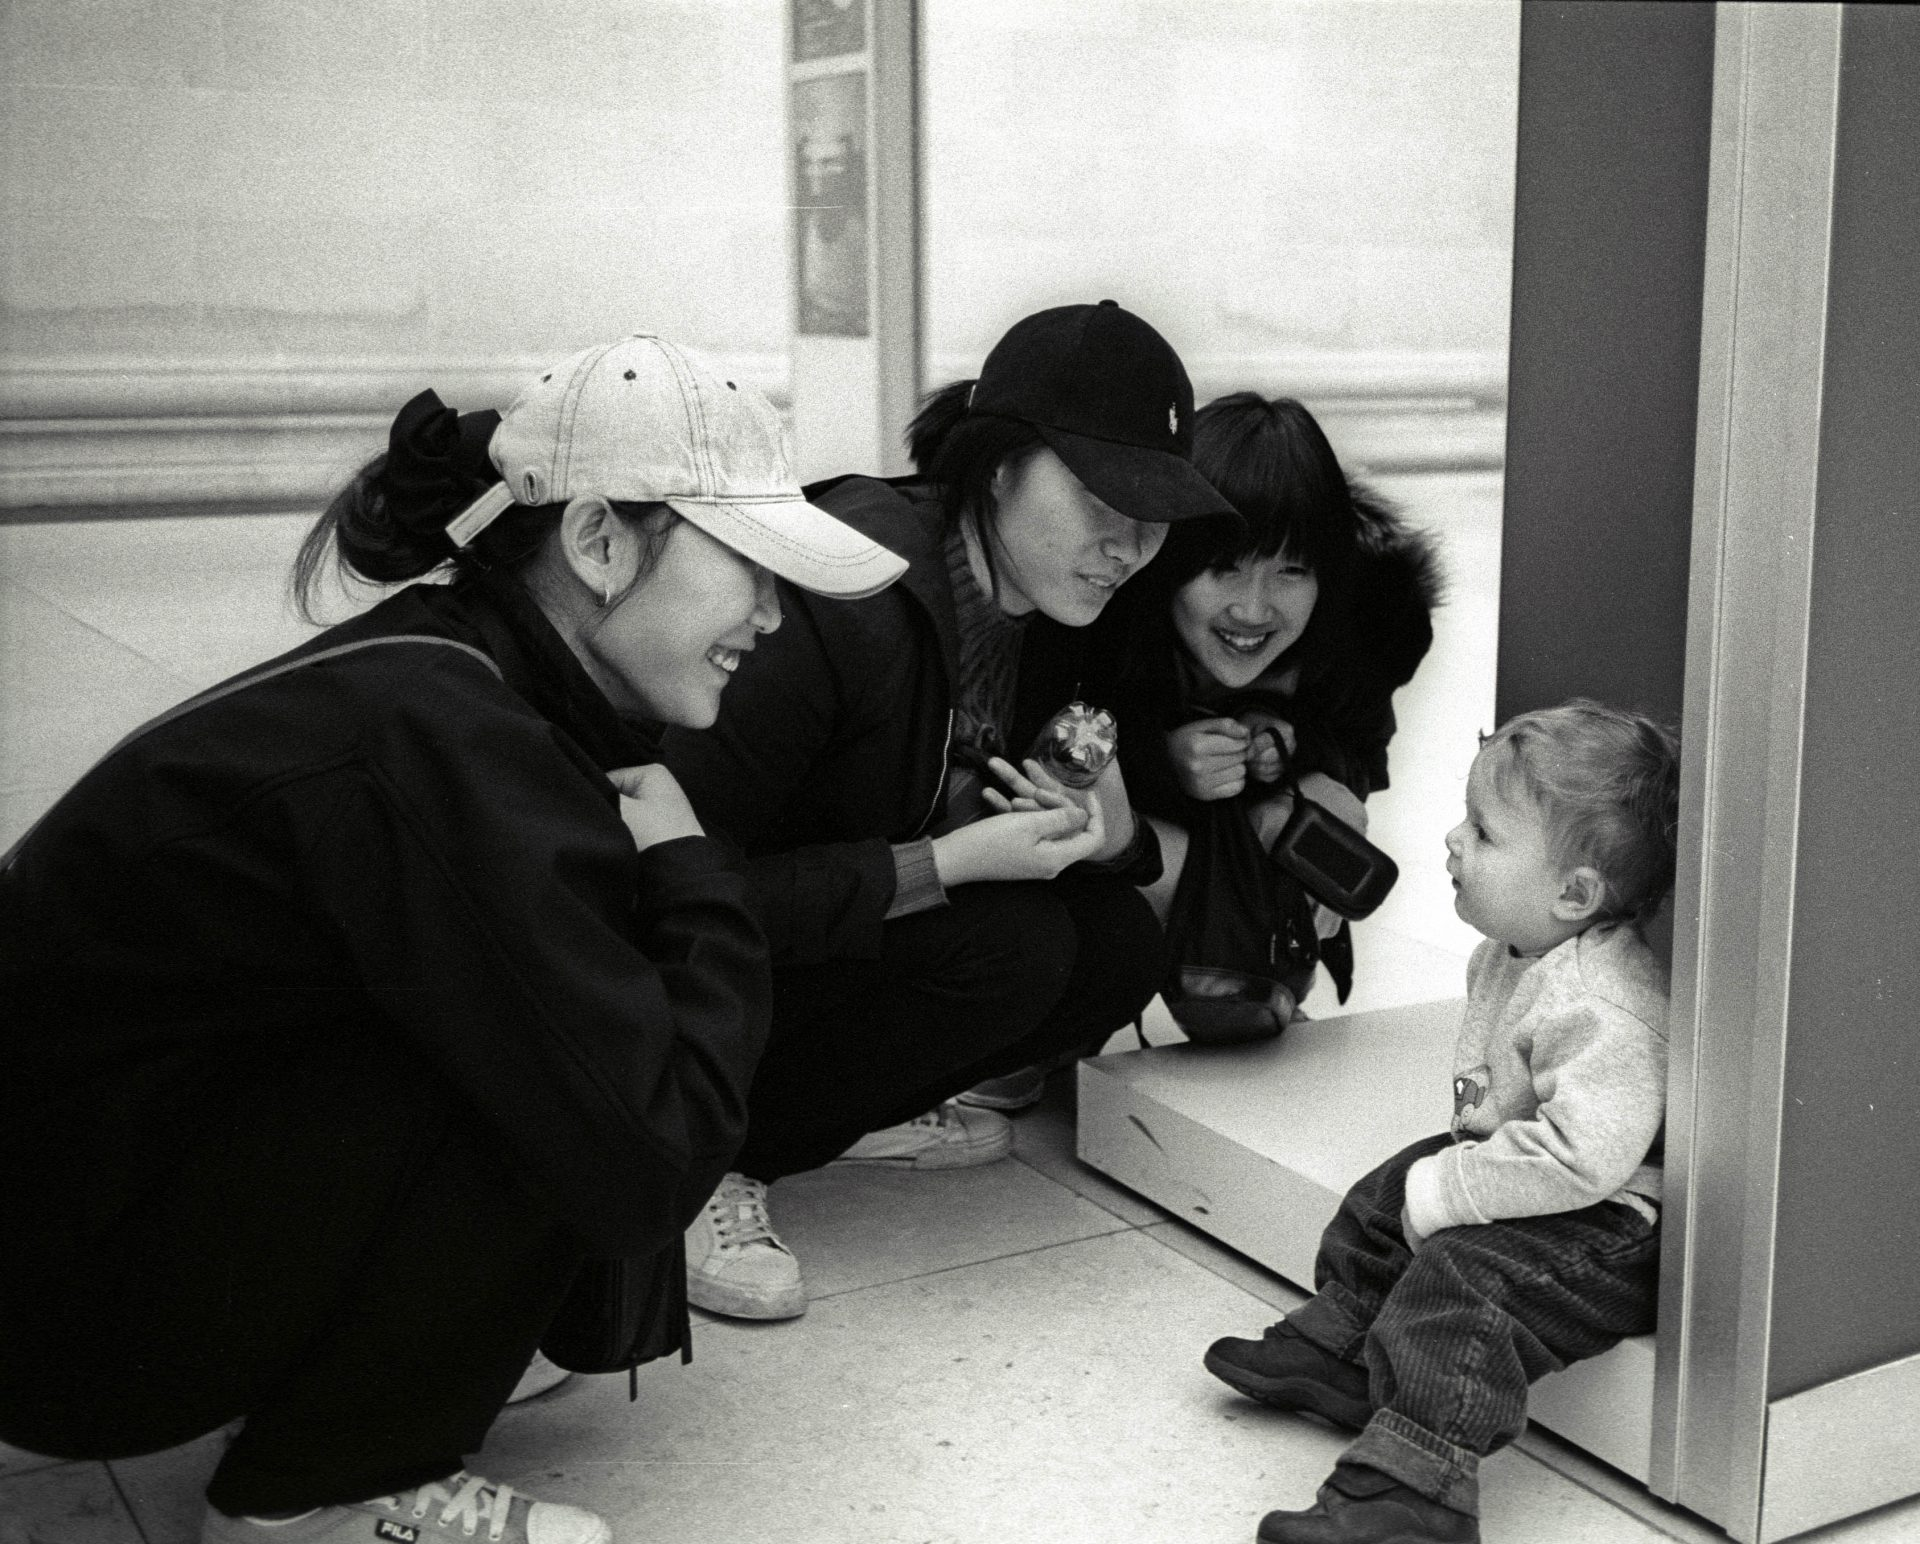 women crouching down looking at toddler